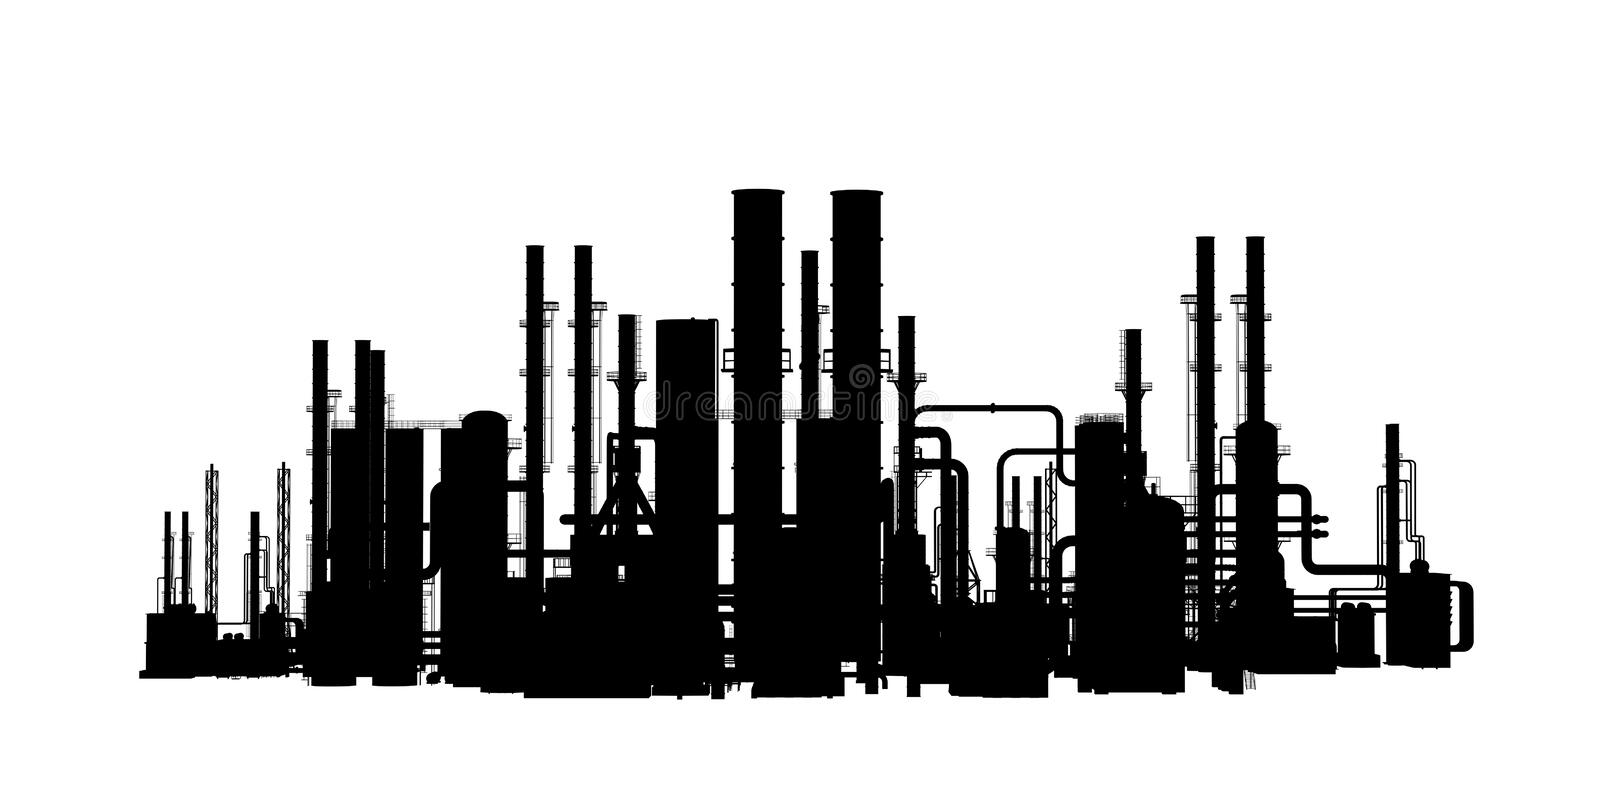 Stencil silhouette factory outside stock illustration